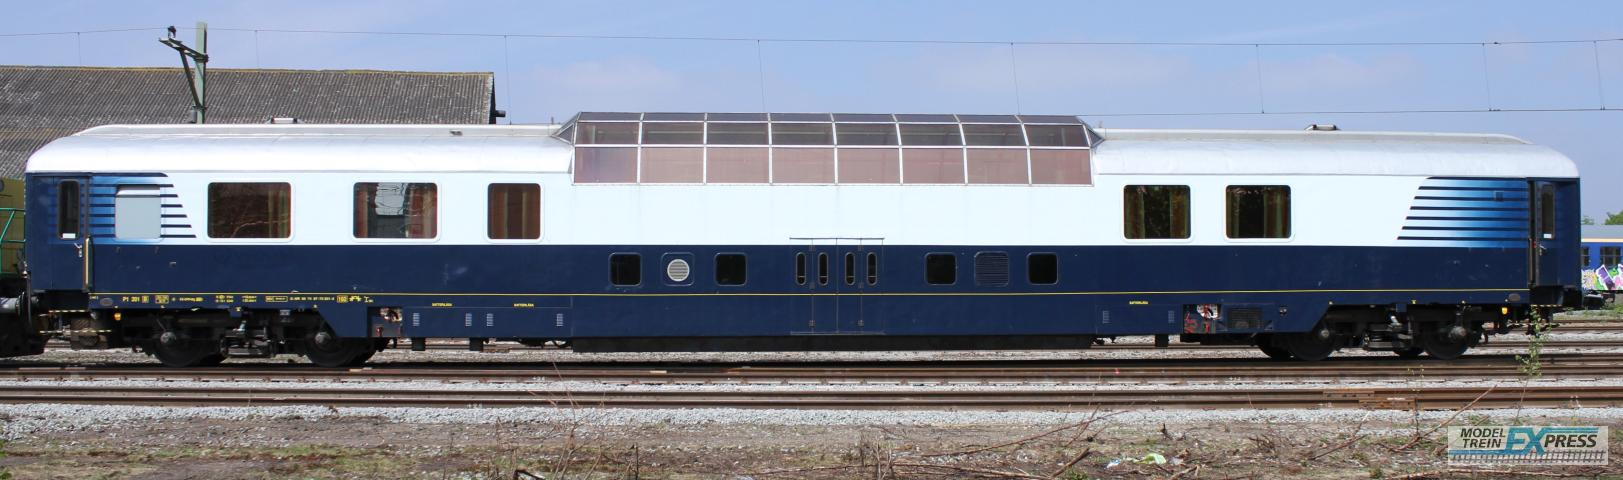 Modeltreinexpress PANORAMA